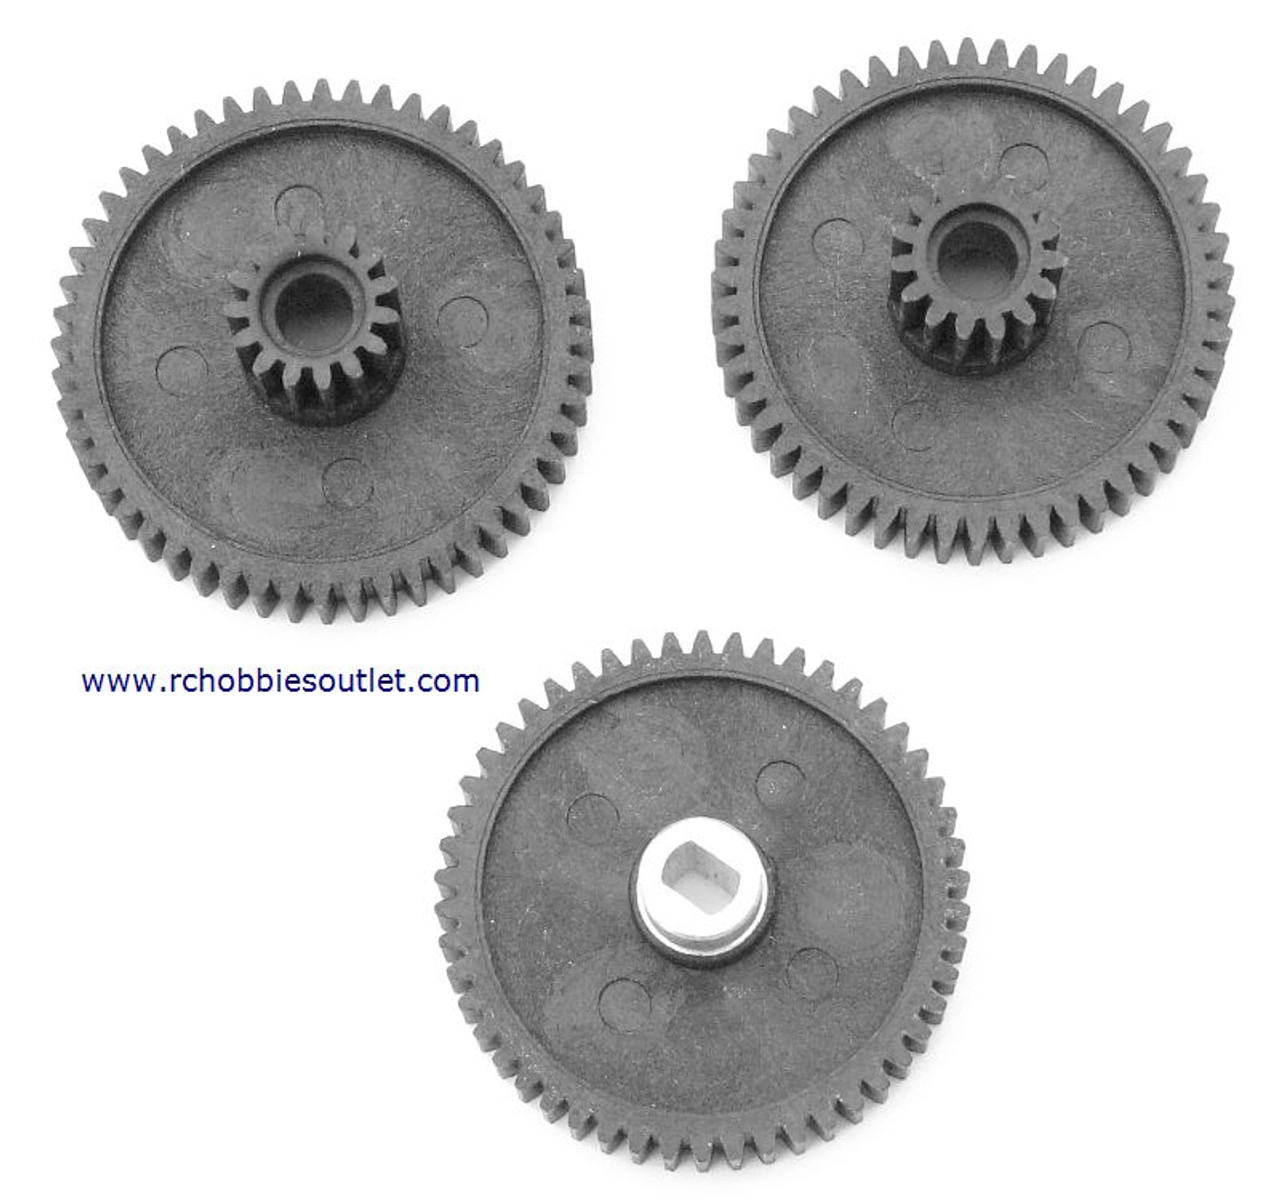 98088  Differential gear set for 1/8 scale HSP, Redcat, Exceed  Rock Crawler